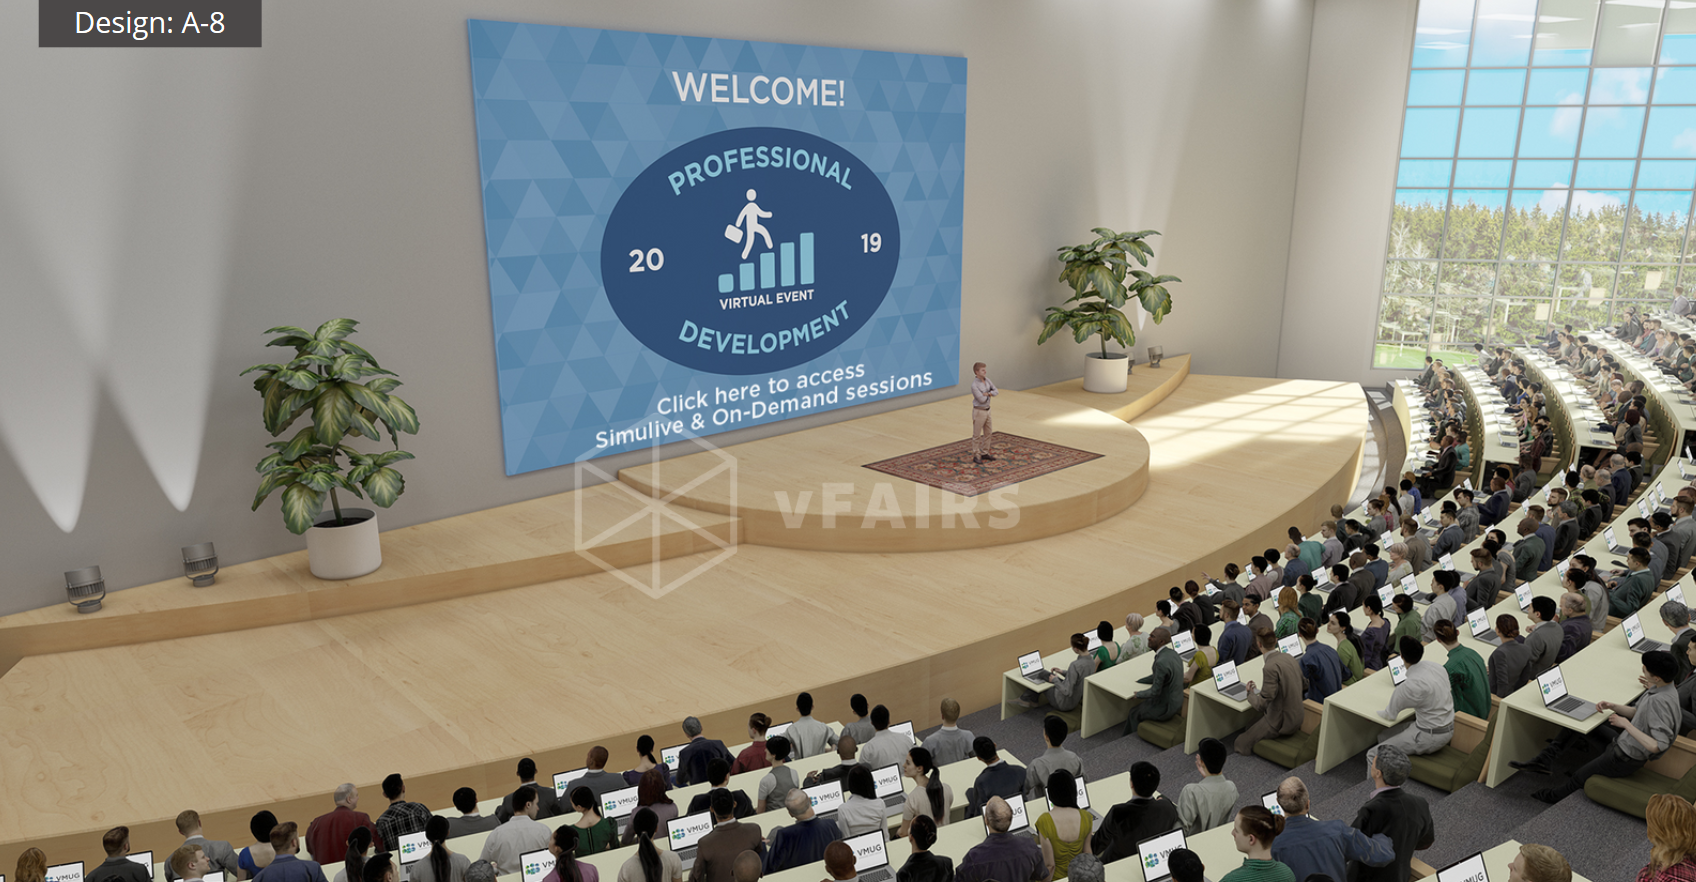 ABMLC 2020 Virtual Auditorium Example